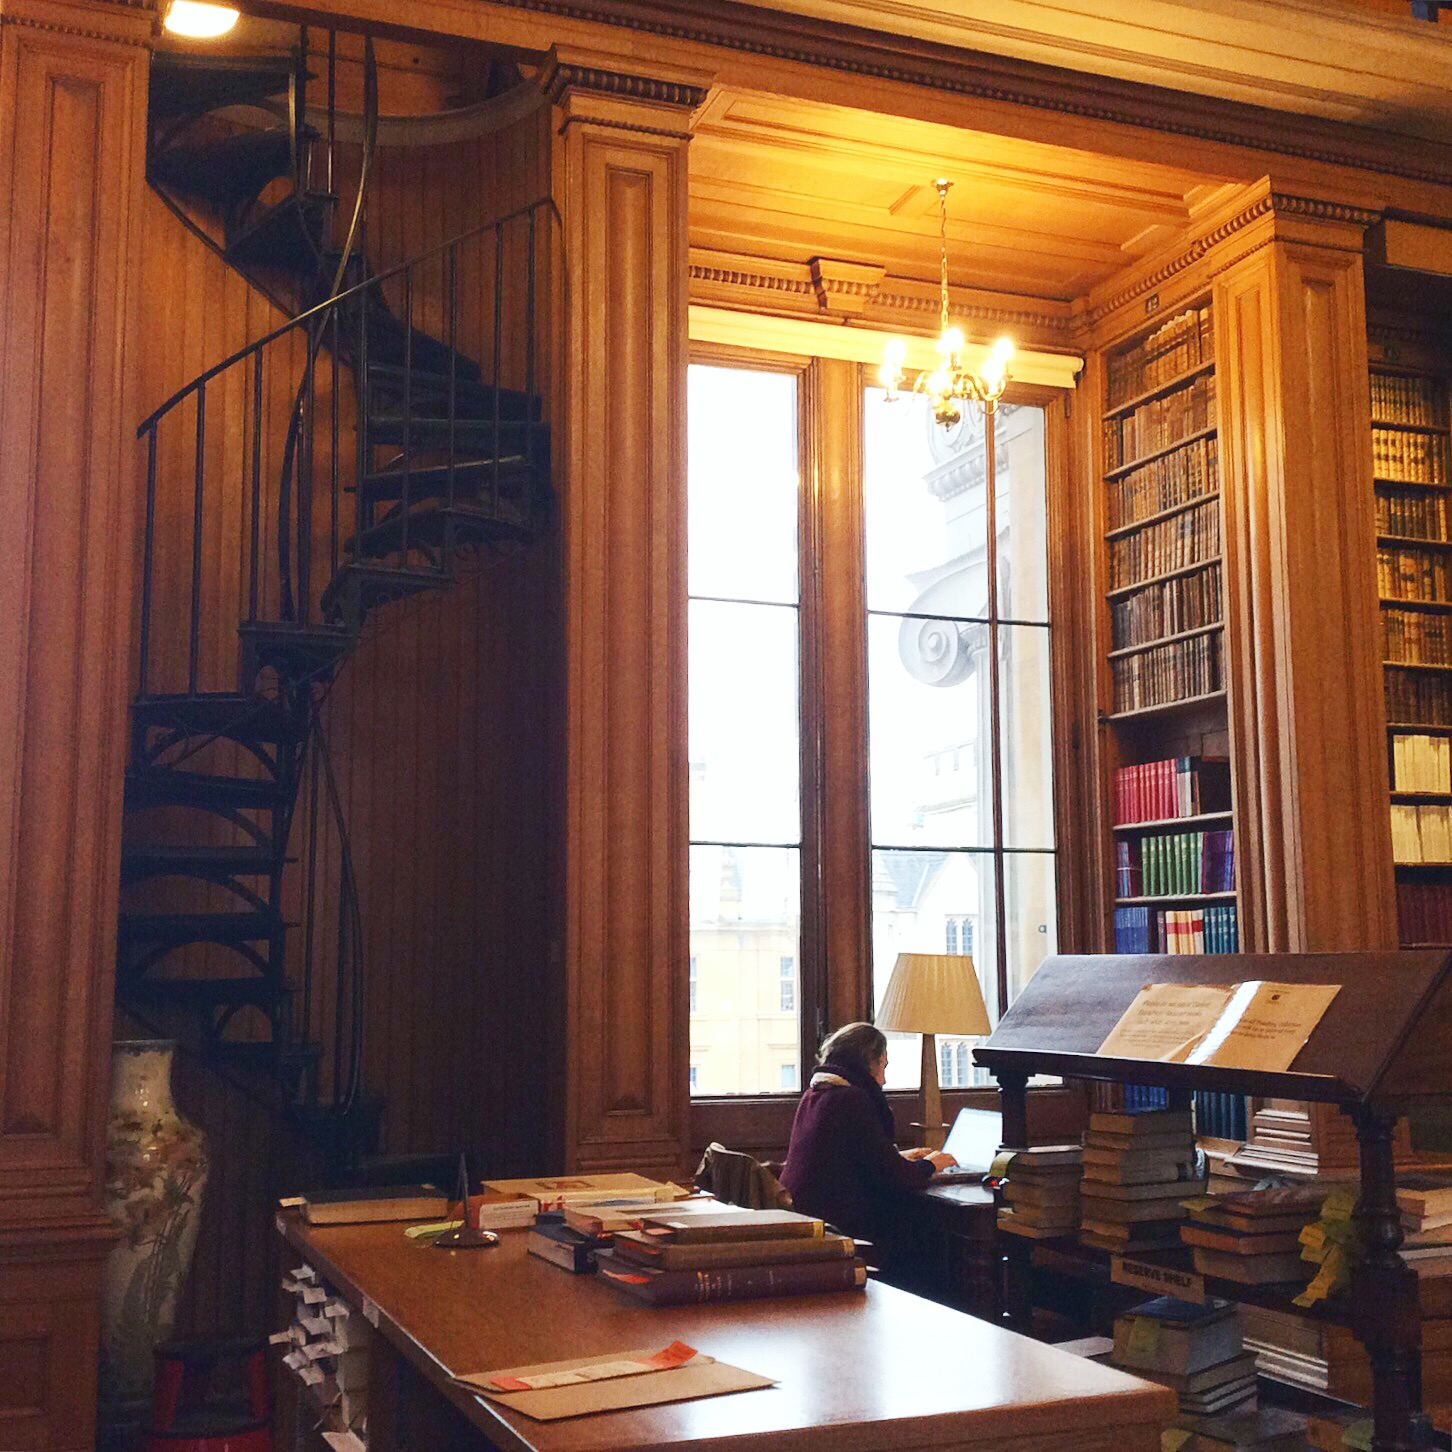 The Taylor Institution, the European languages library at Oxford